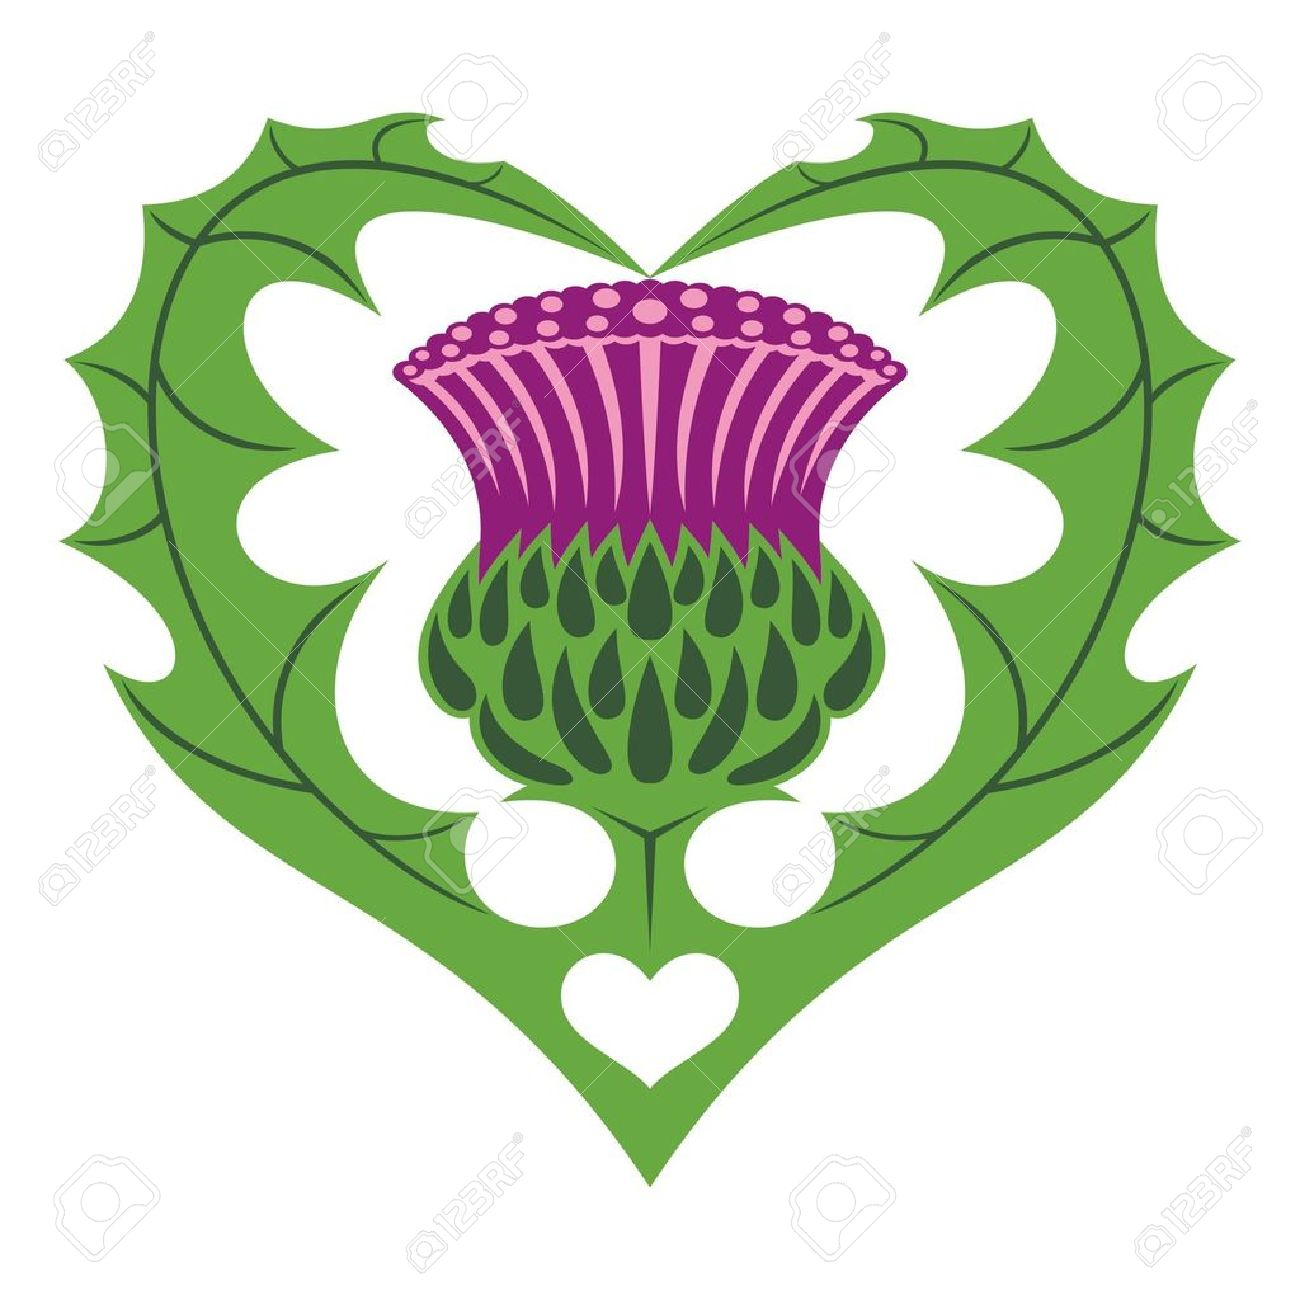 Thistle clipart free picture royalty free download Thistle Clipart | Free download best Thistle Clipart on ClipArtMag.com picture royalty free download